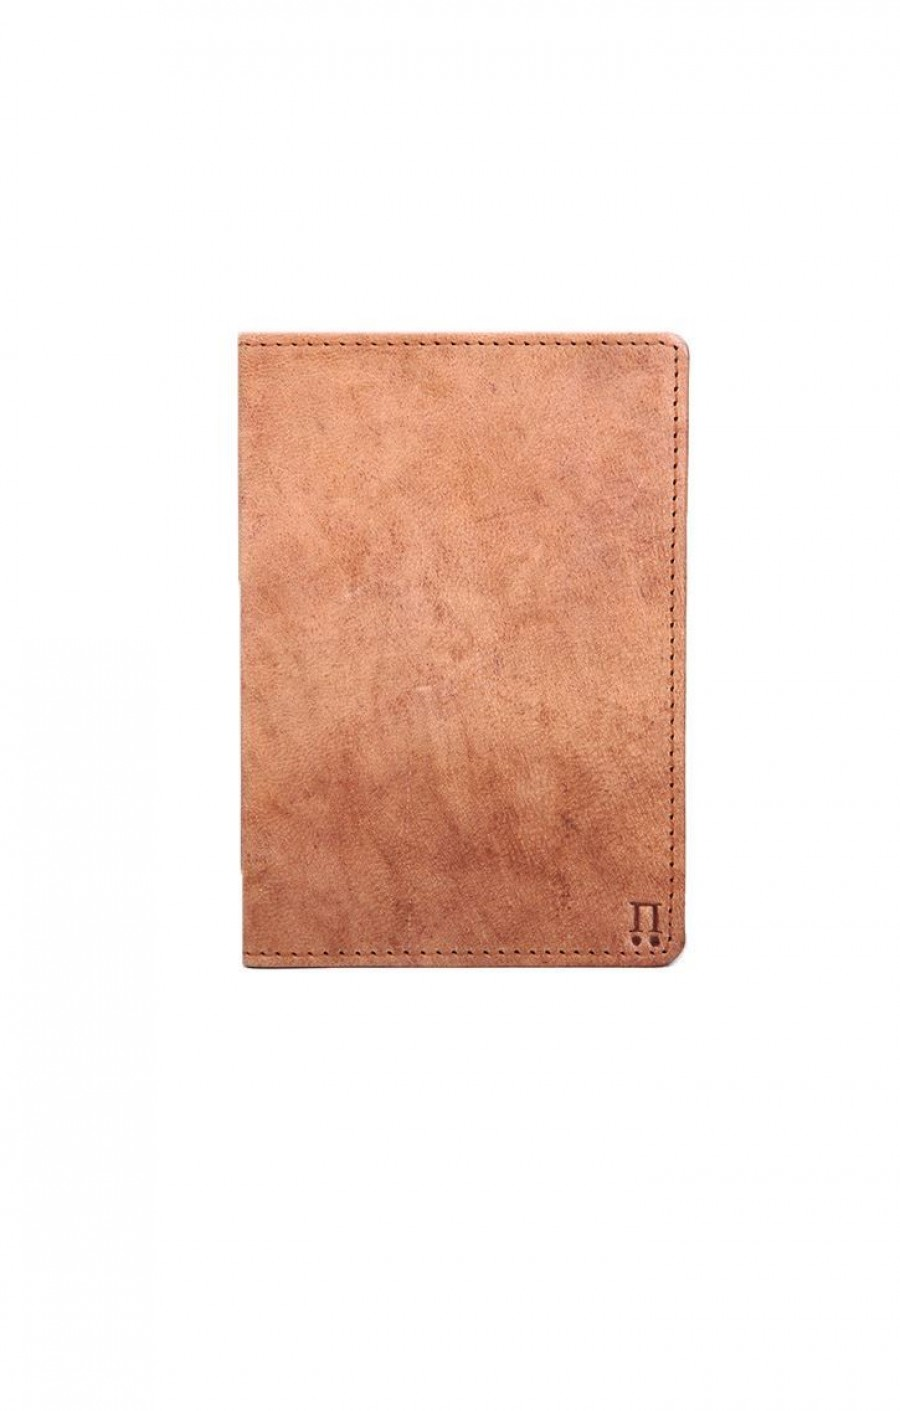 Buy Leather Passport Holder Online